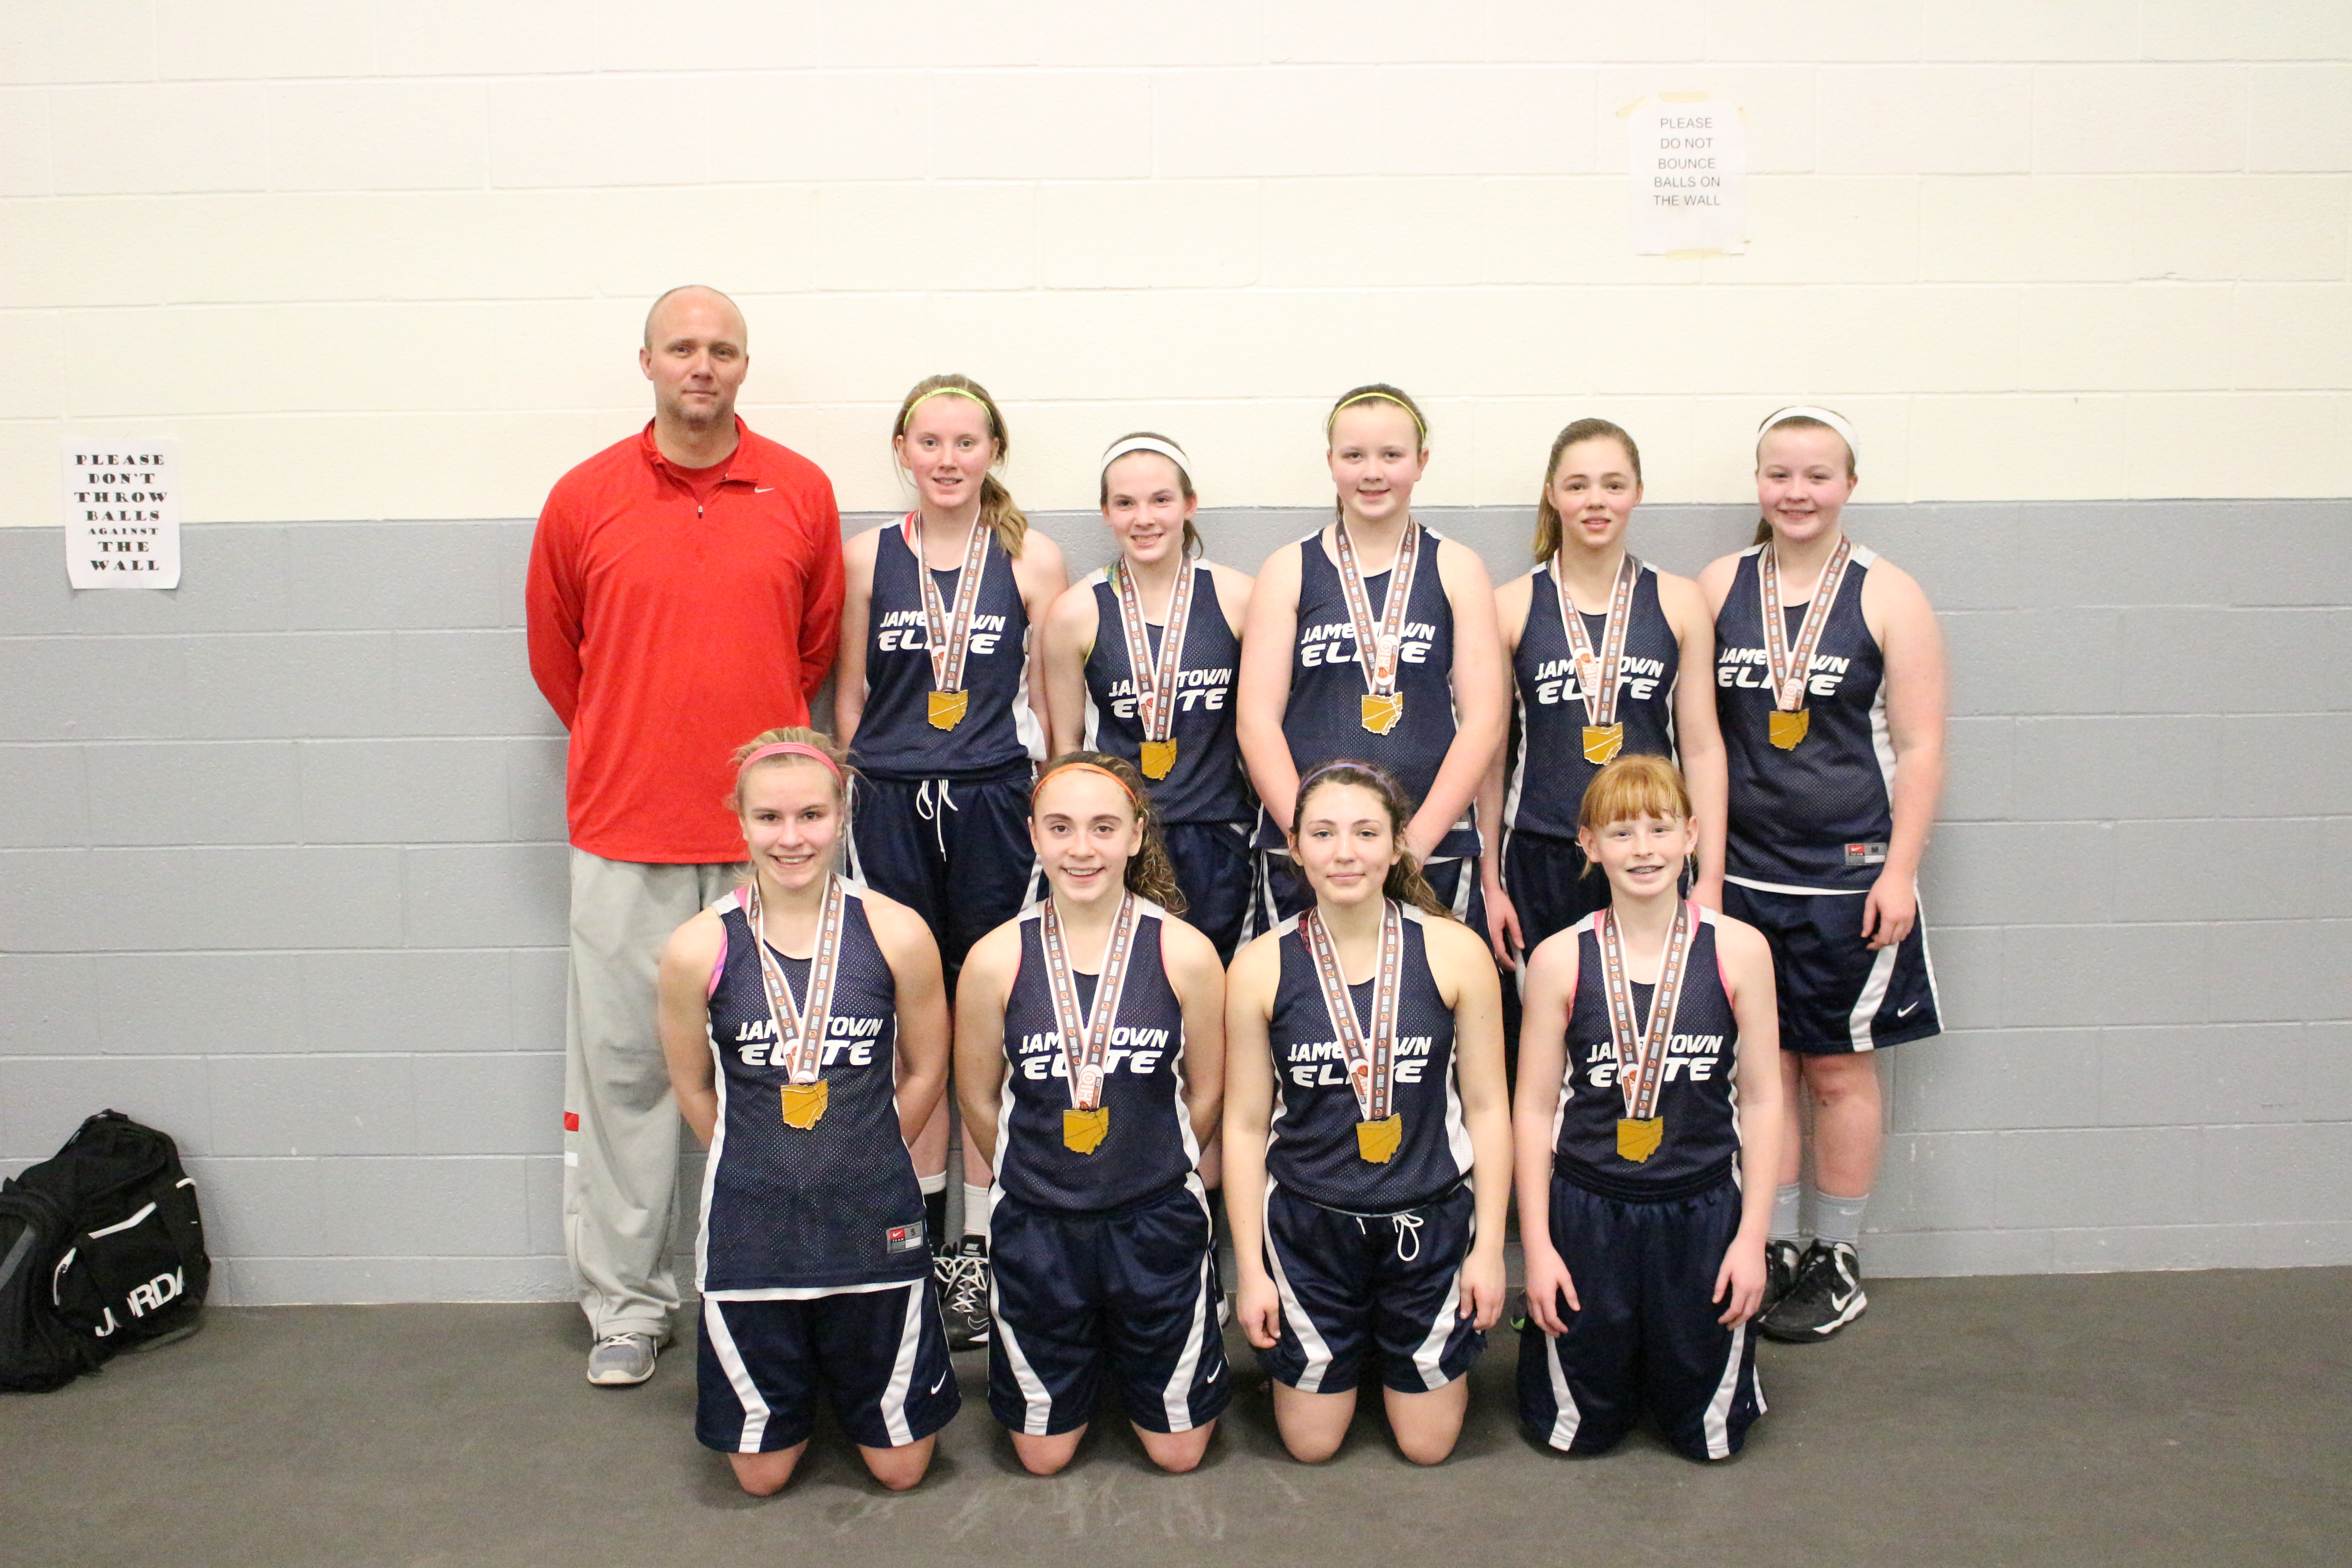 spring run and jump 7th grade runner up Jamestown Elite